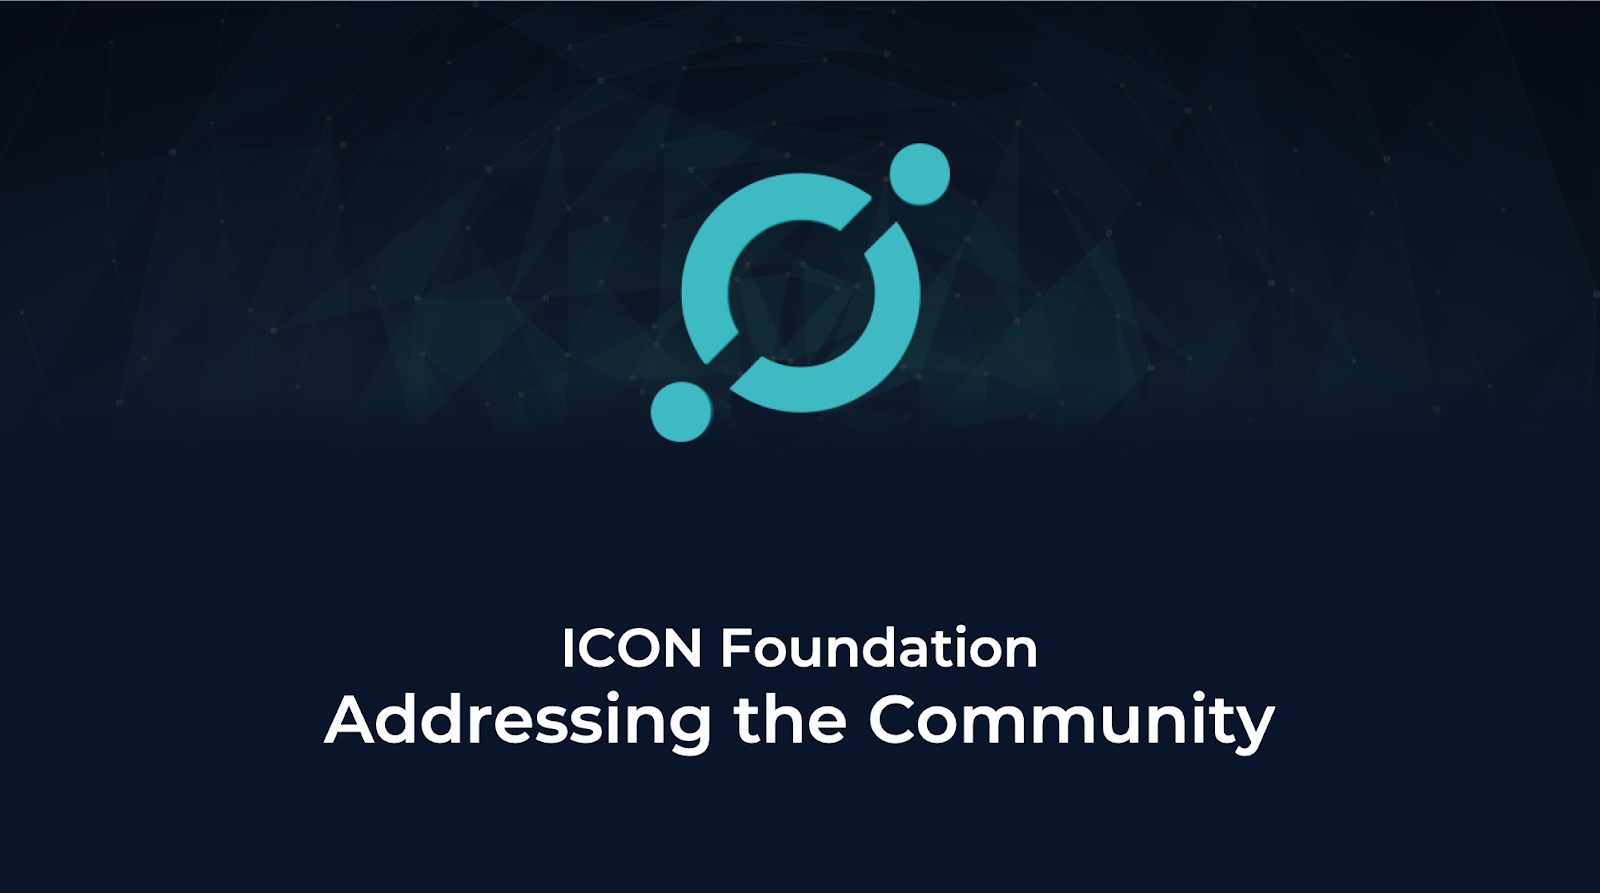 icon foundation addressing the community hello icon world medium